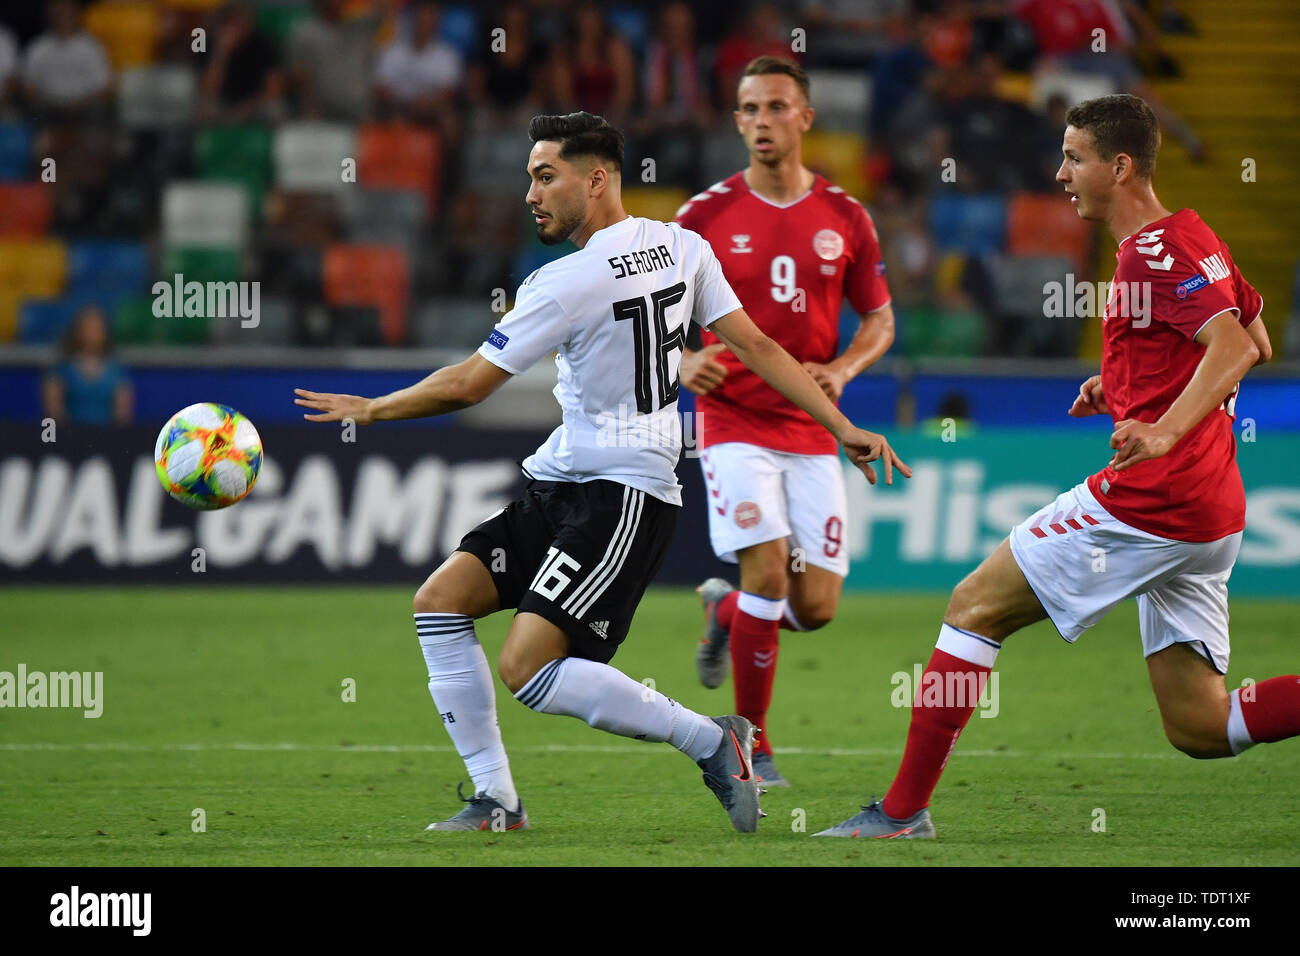 Suat SERDAR (GER), action, duels. Germany (GER) -Daenemark (DEN) 3-1, on 17.06.2019 Stadio Friuli Udine. Football U-21, UEFA Under21 European Championship in Italy / SanMarino from 16.-30.06.2019. | Usage worldwide - Stock Image